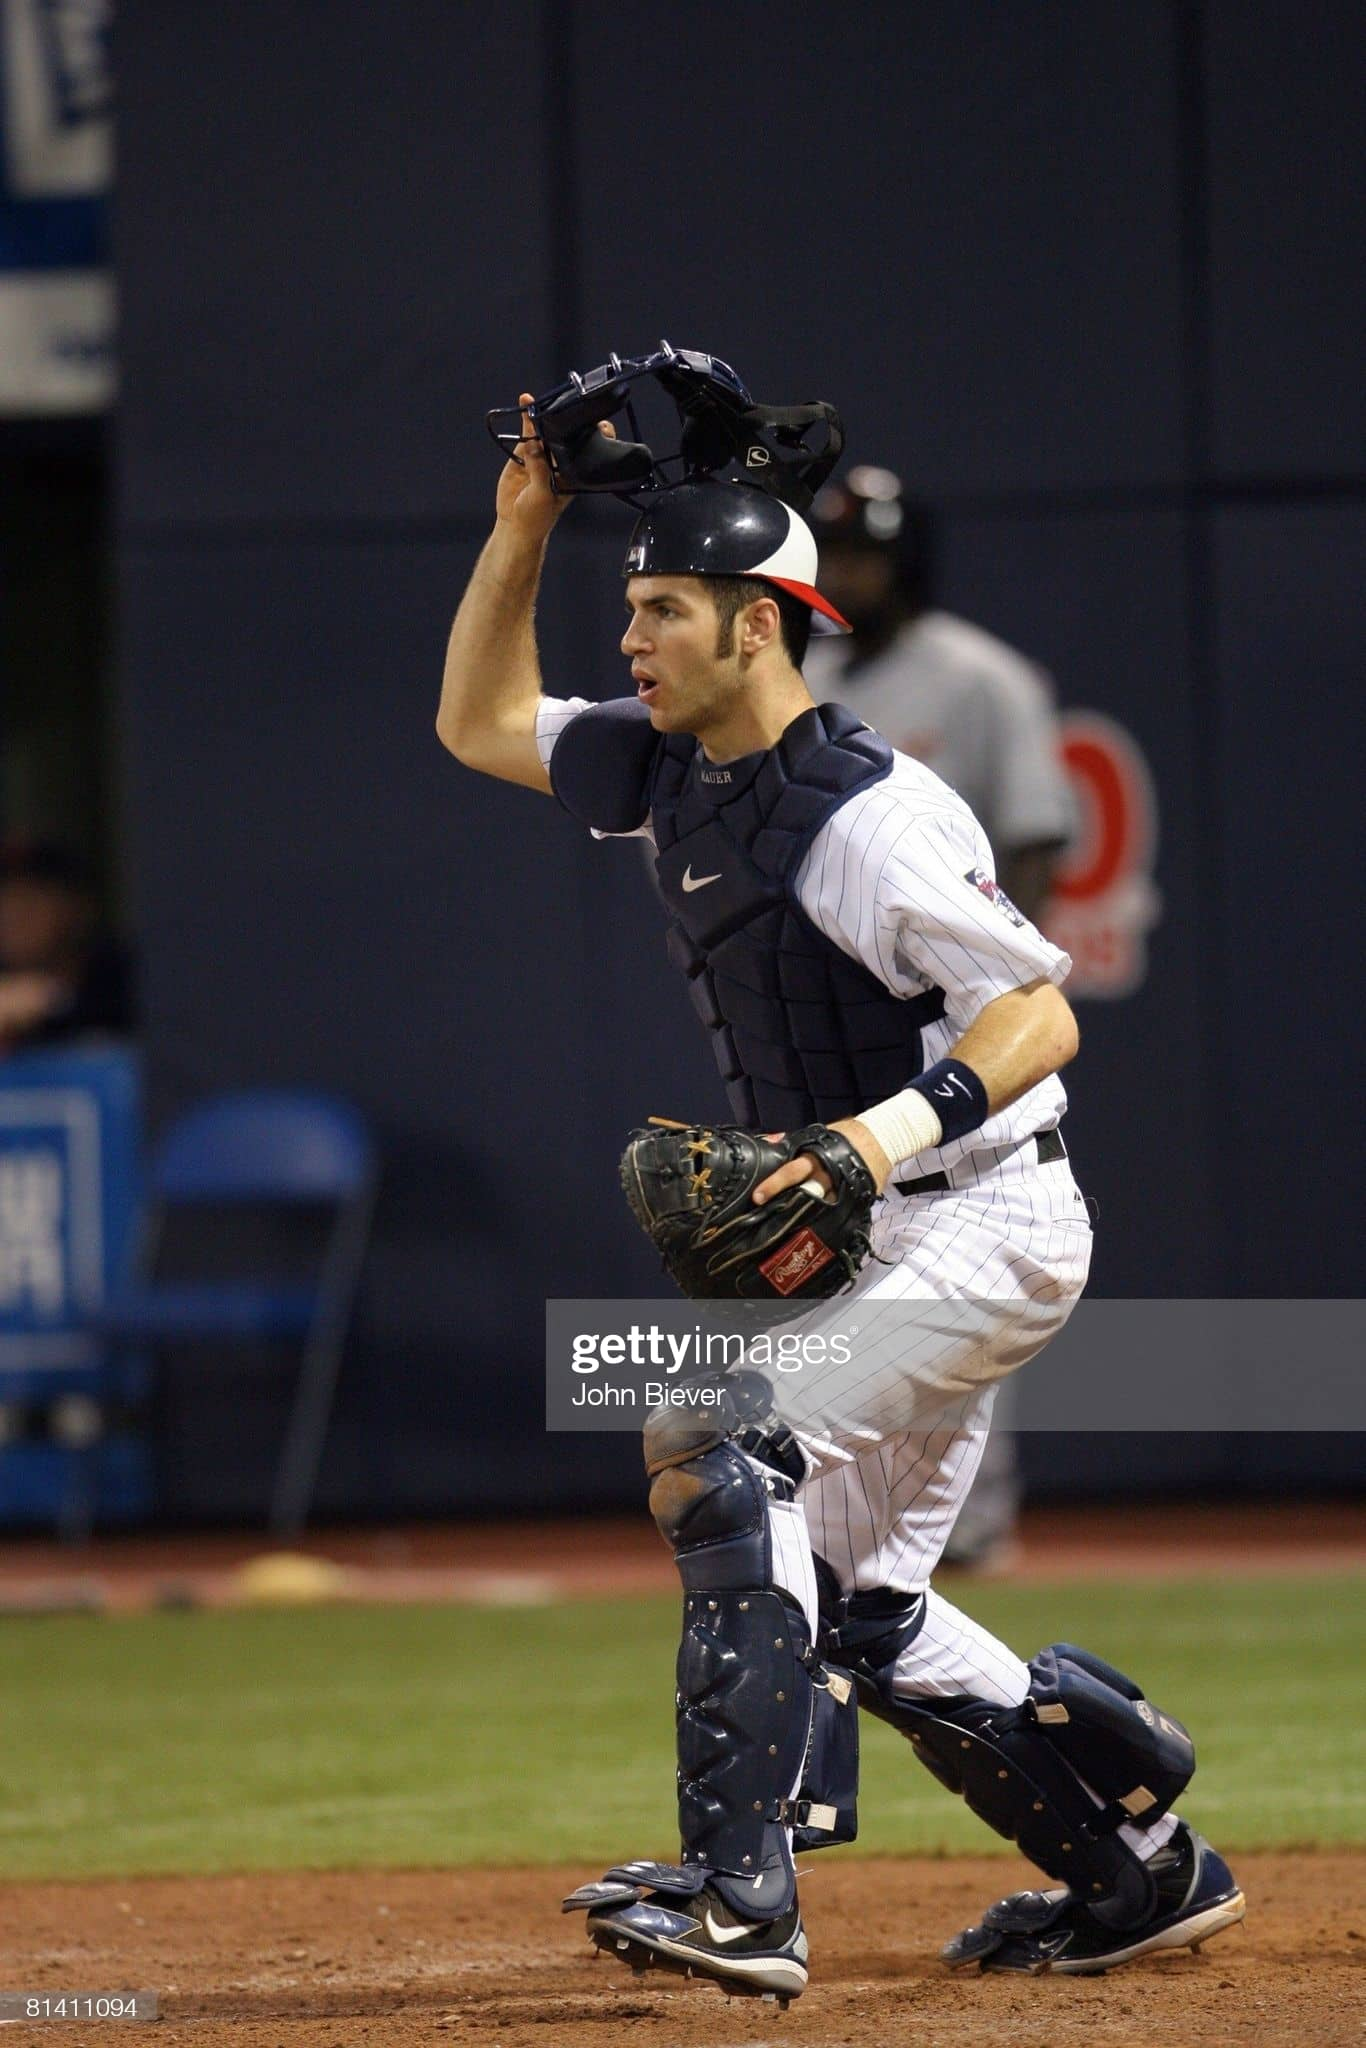 Joe Mauer in a 2006 home game against the Tigers